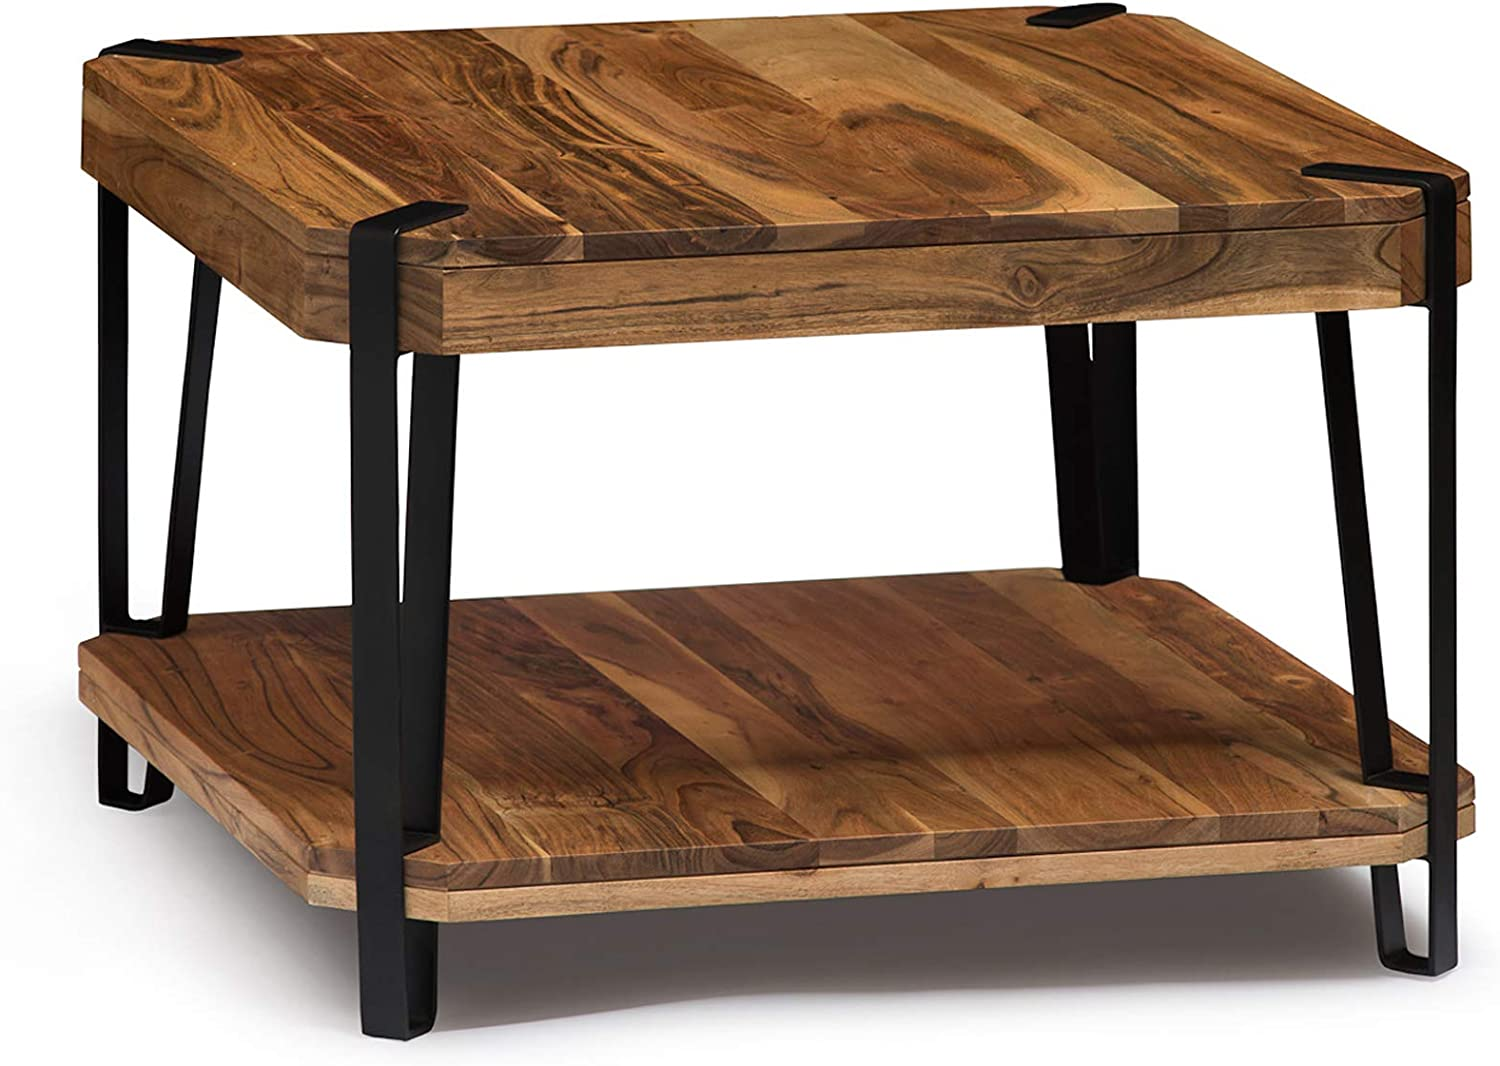 Alaterre Furniture Ryegate Natural Solid Wood with Metal Cube Coffee Table, Live Edge